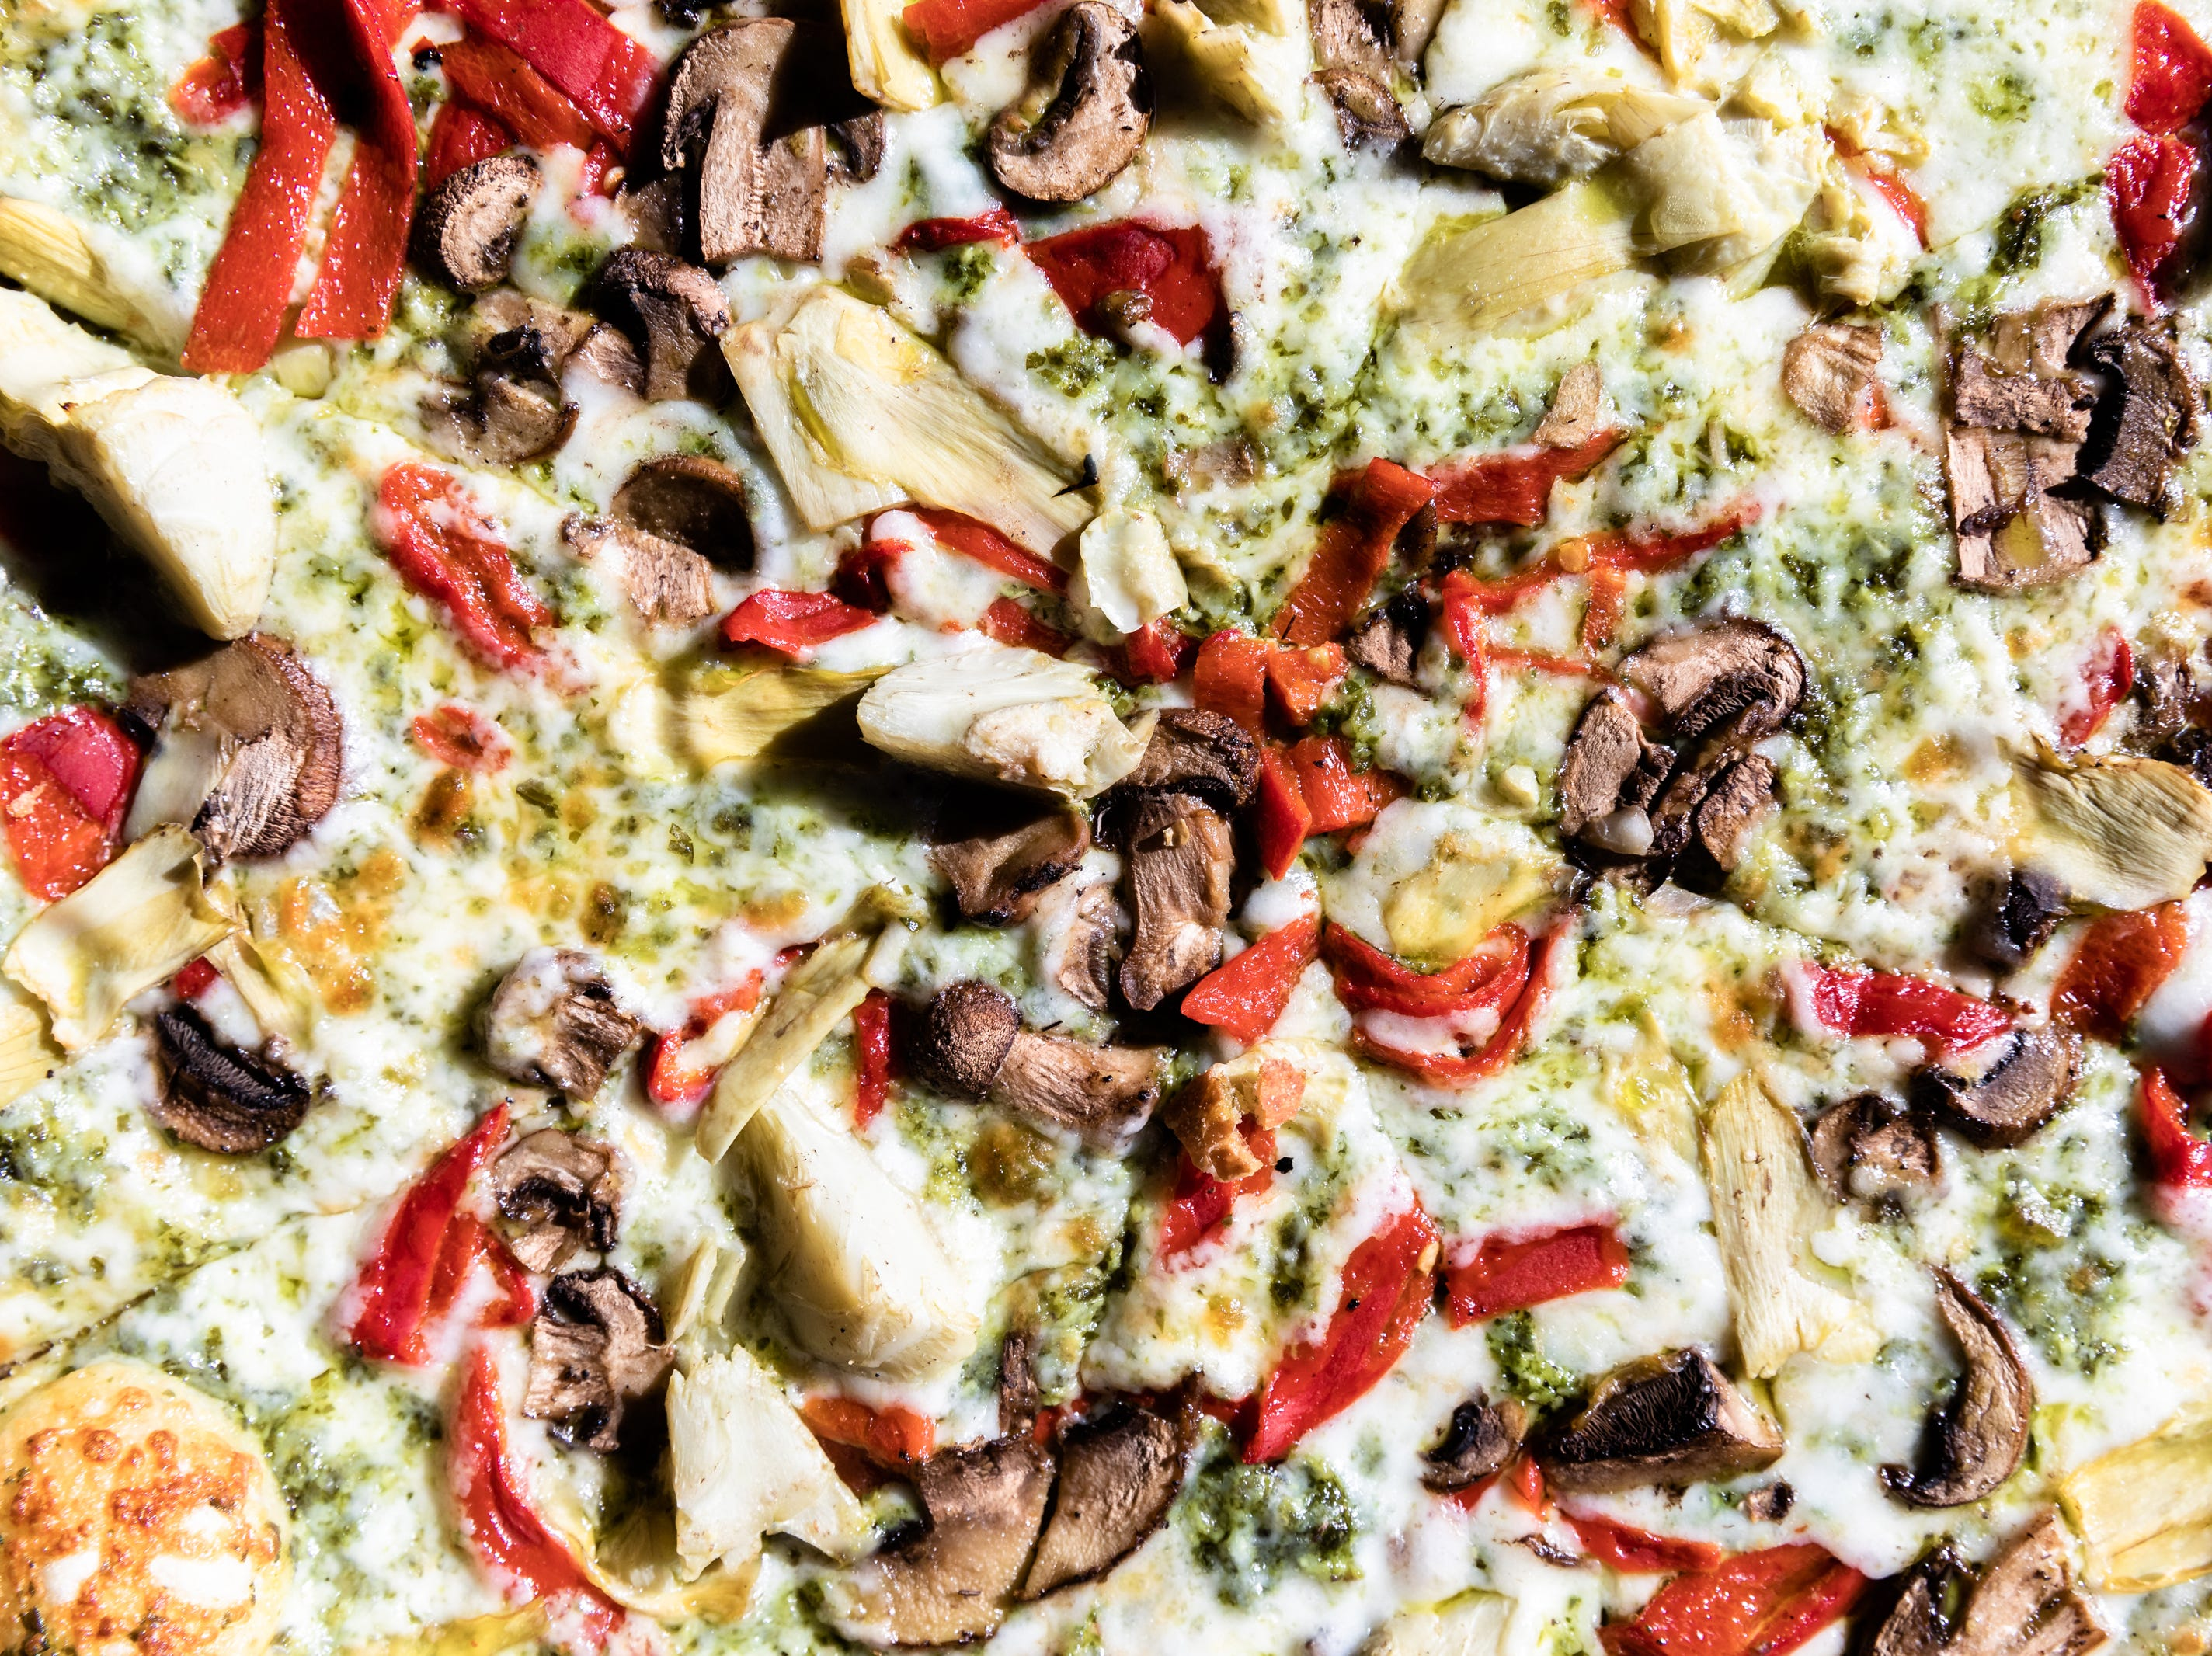 Galactic Pizza's Pesto Artichoke pizza with artichoke, roasted red peppers, mozzarella, mushrooms with house made pesto sauce.